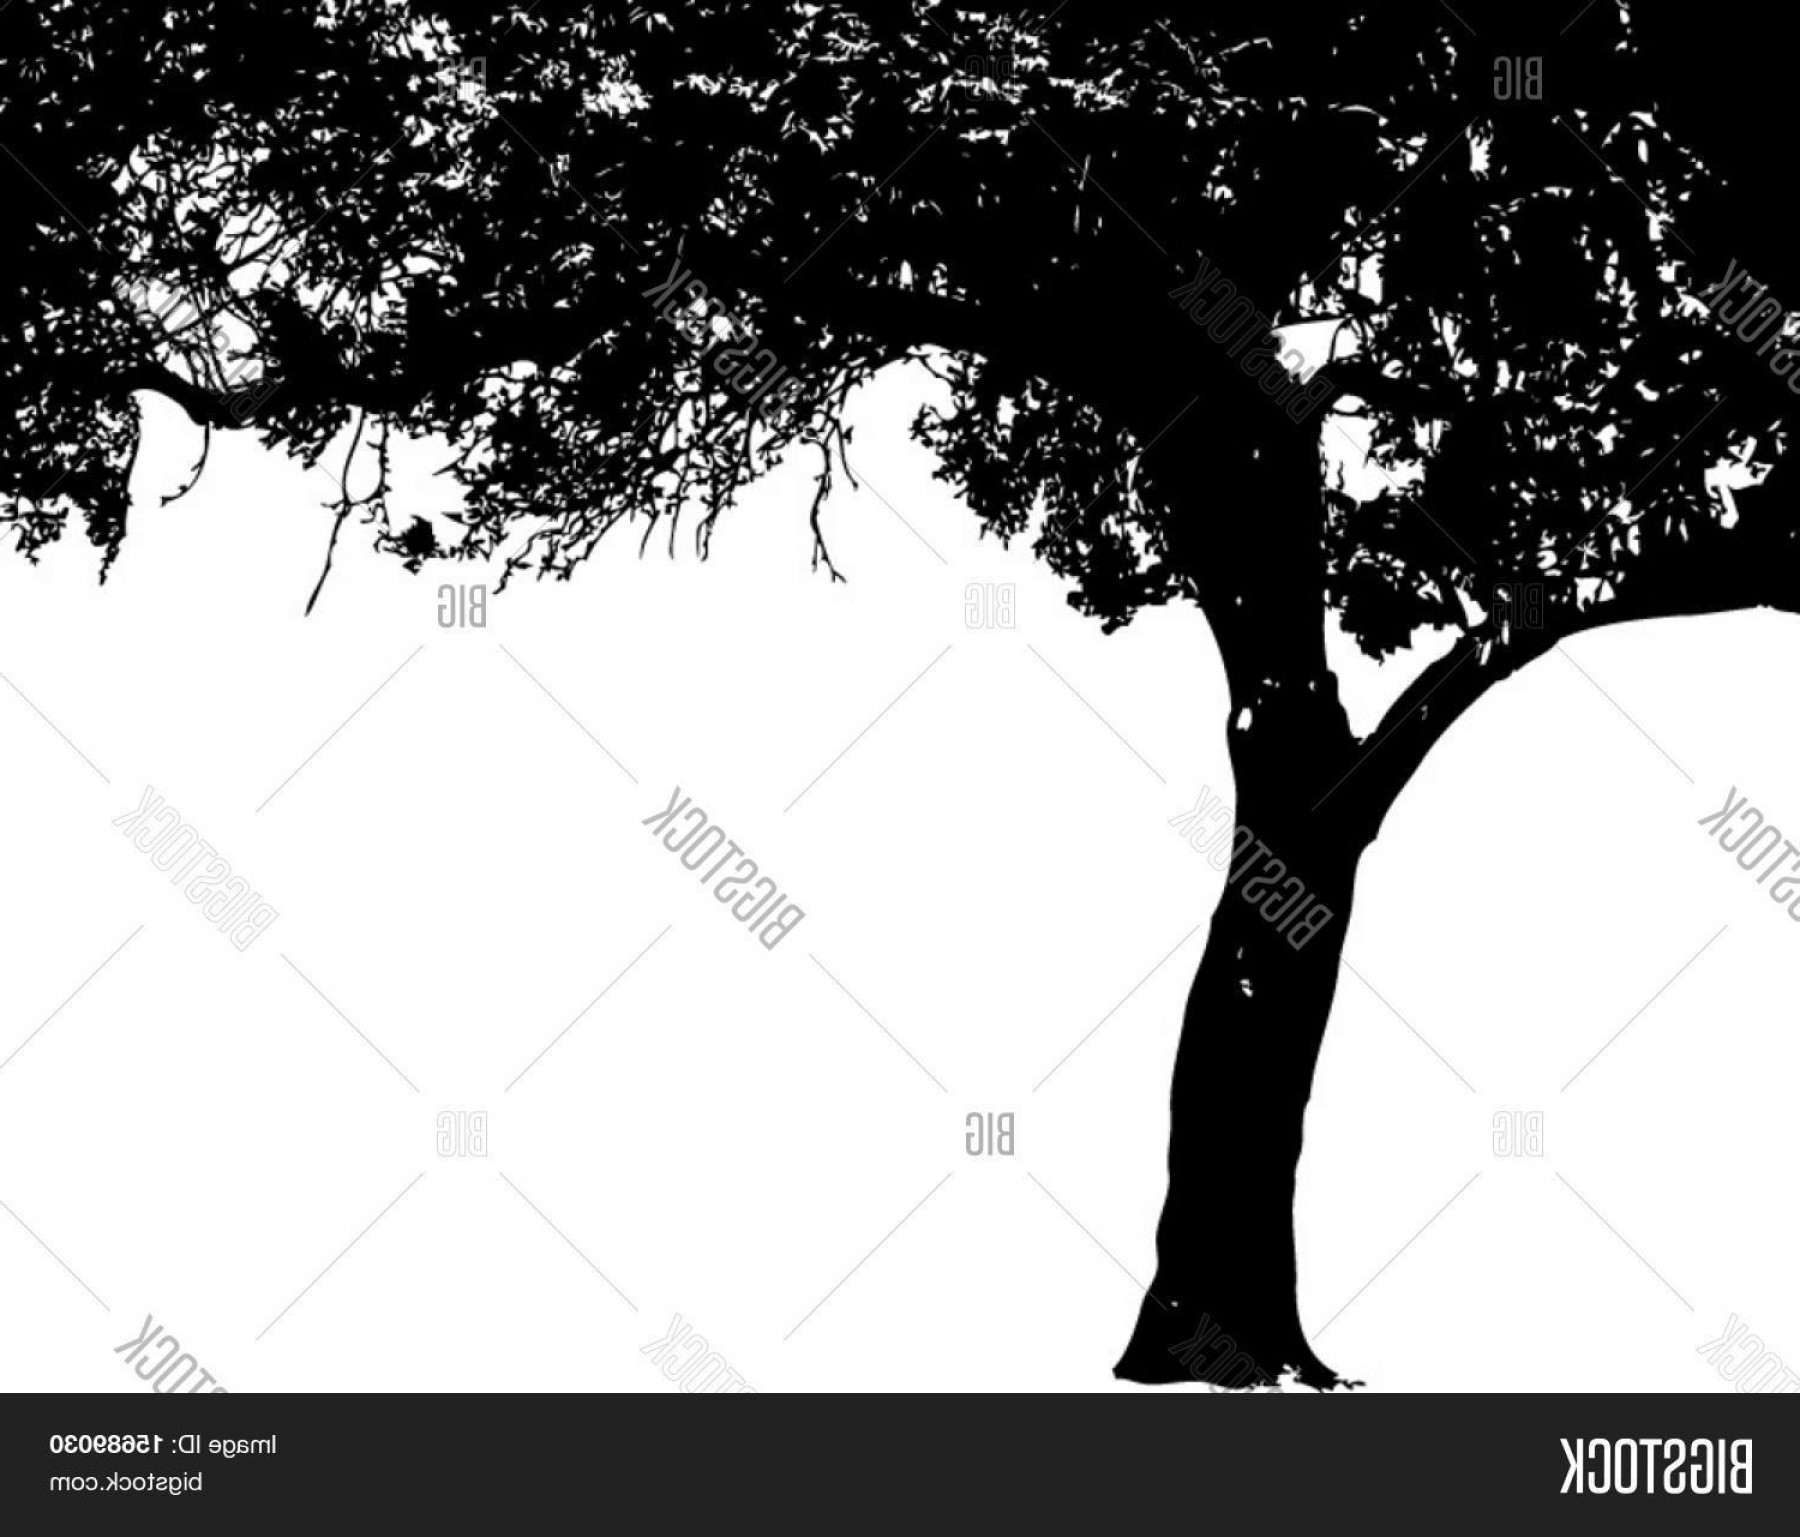 Oak Tree Silhouette Vector Graphics: Stock Vector Vector Of An Oak Tree Silhouette